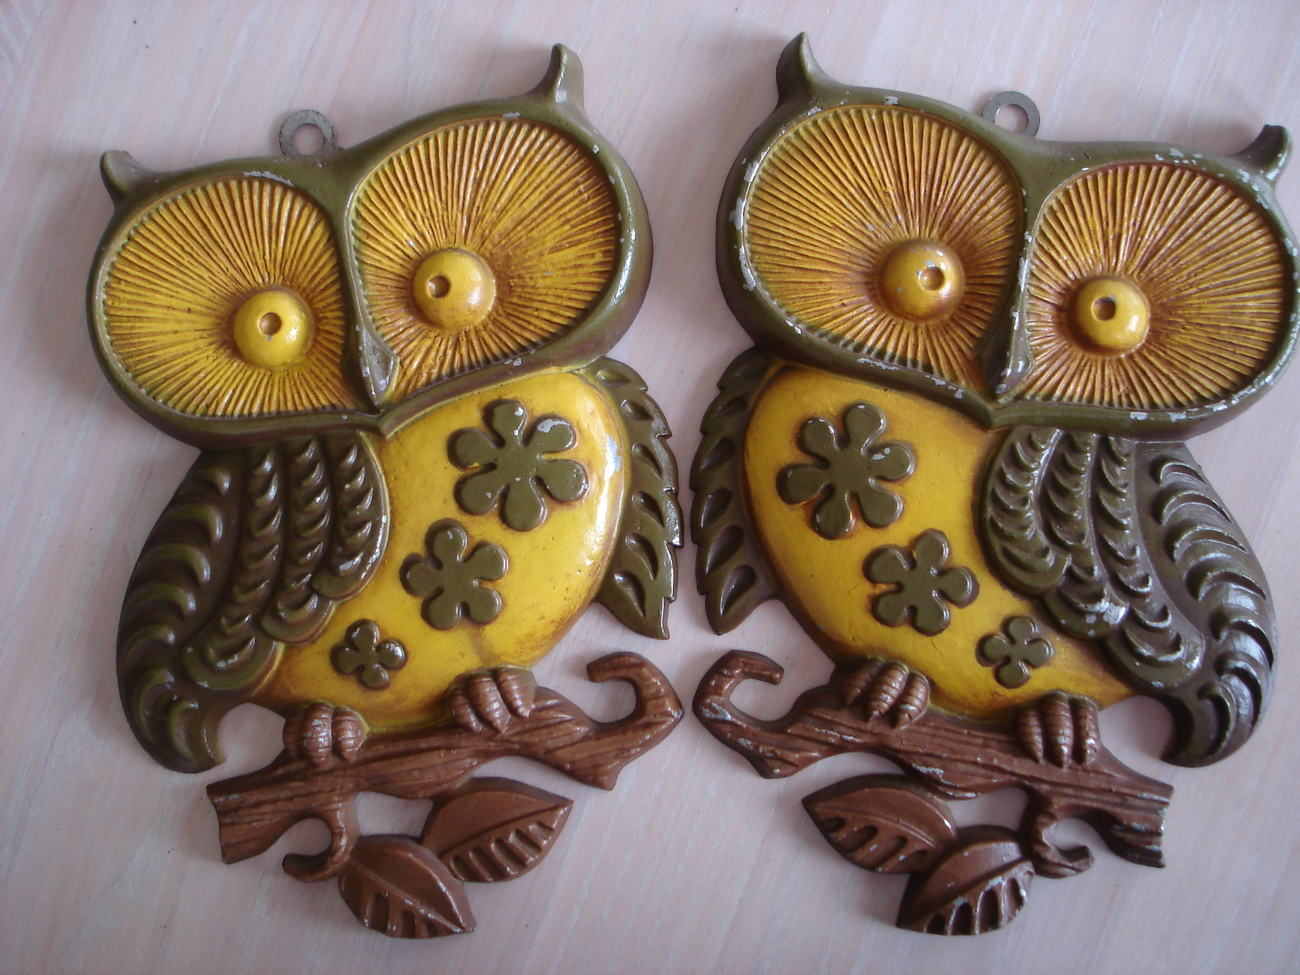 sexton usa enamel metal owl wall decor plaques 2 vintage 1 metal. Black Bedroom Furniture Sets. Home Design Ideas